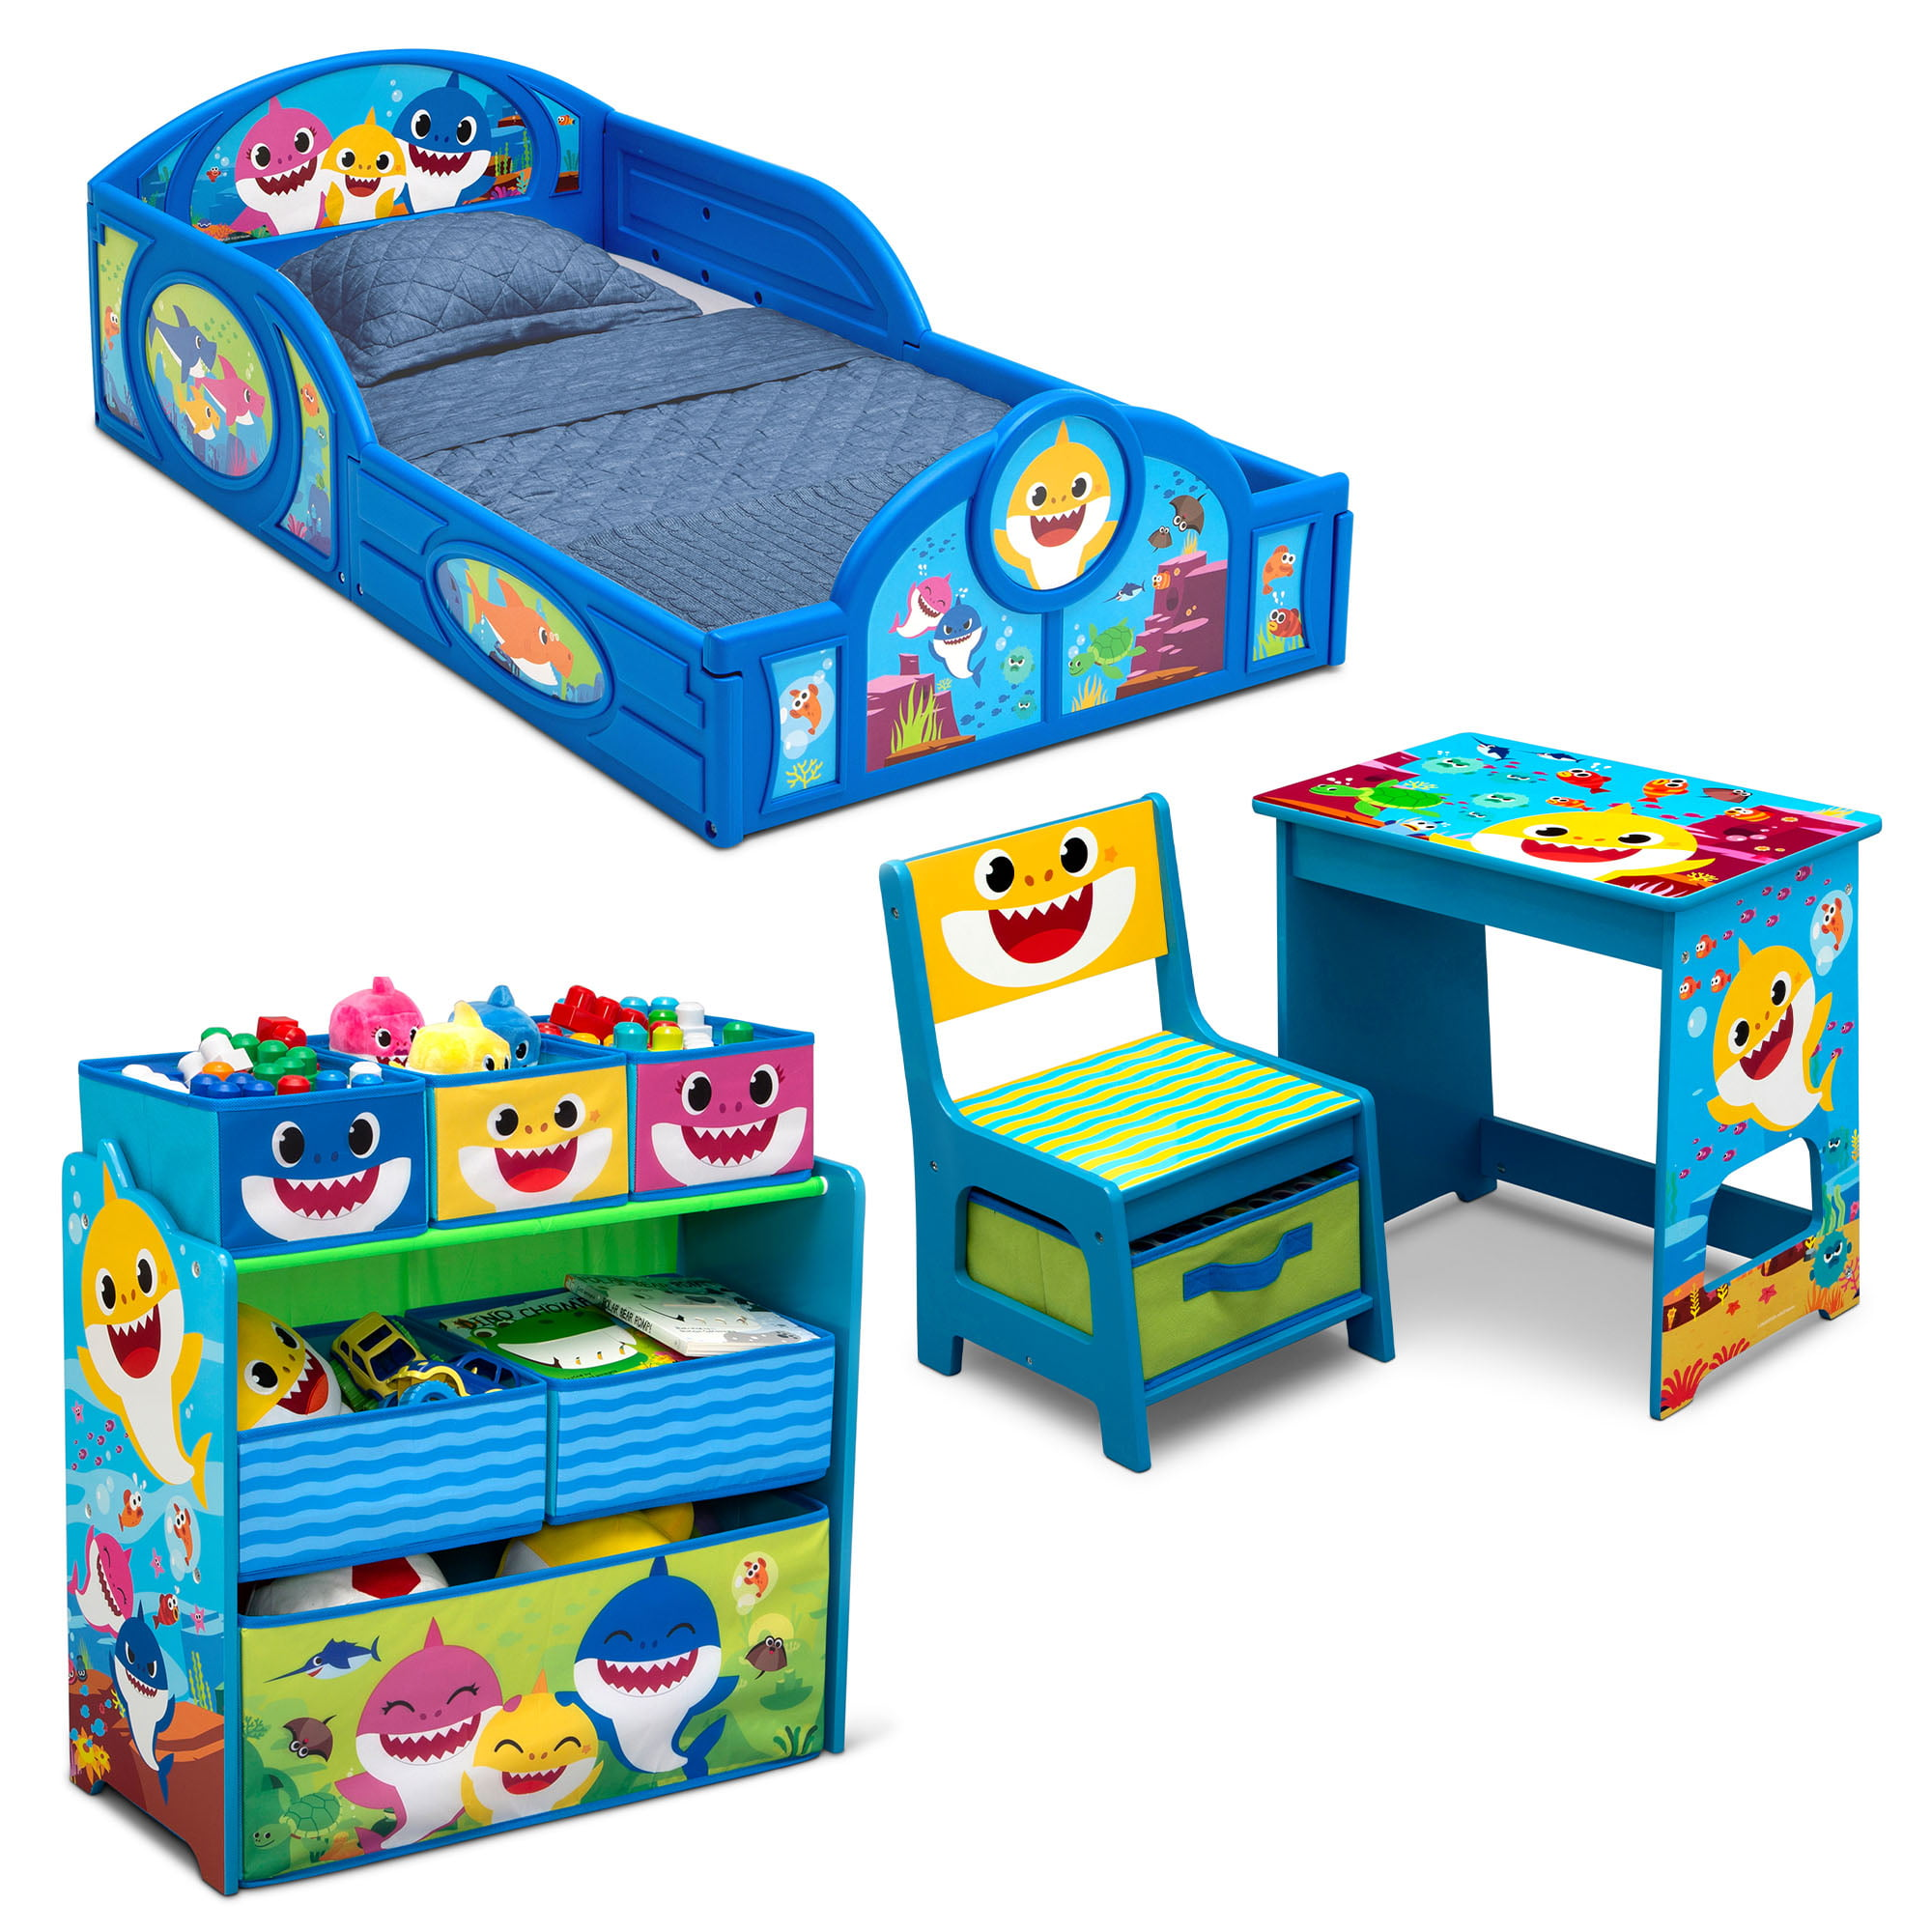 Baby Shark Tour 4 Piece Room In A Box Bedroom Set By Delta Children Includes Sleep Play Toddler Bed 6 Bin Design Store Toy Organizer And Desk With Chair Walmart Com Walmart Com